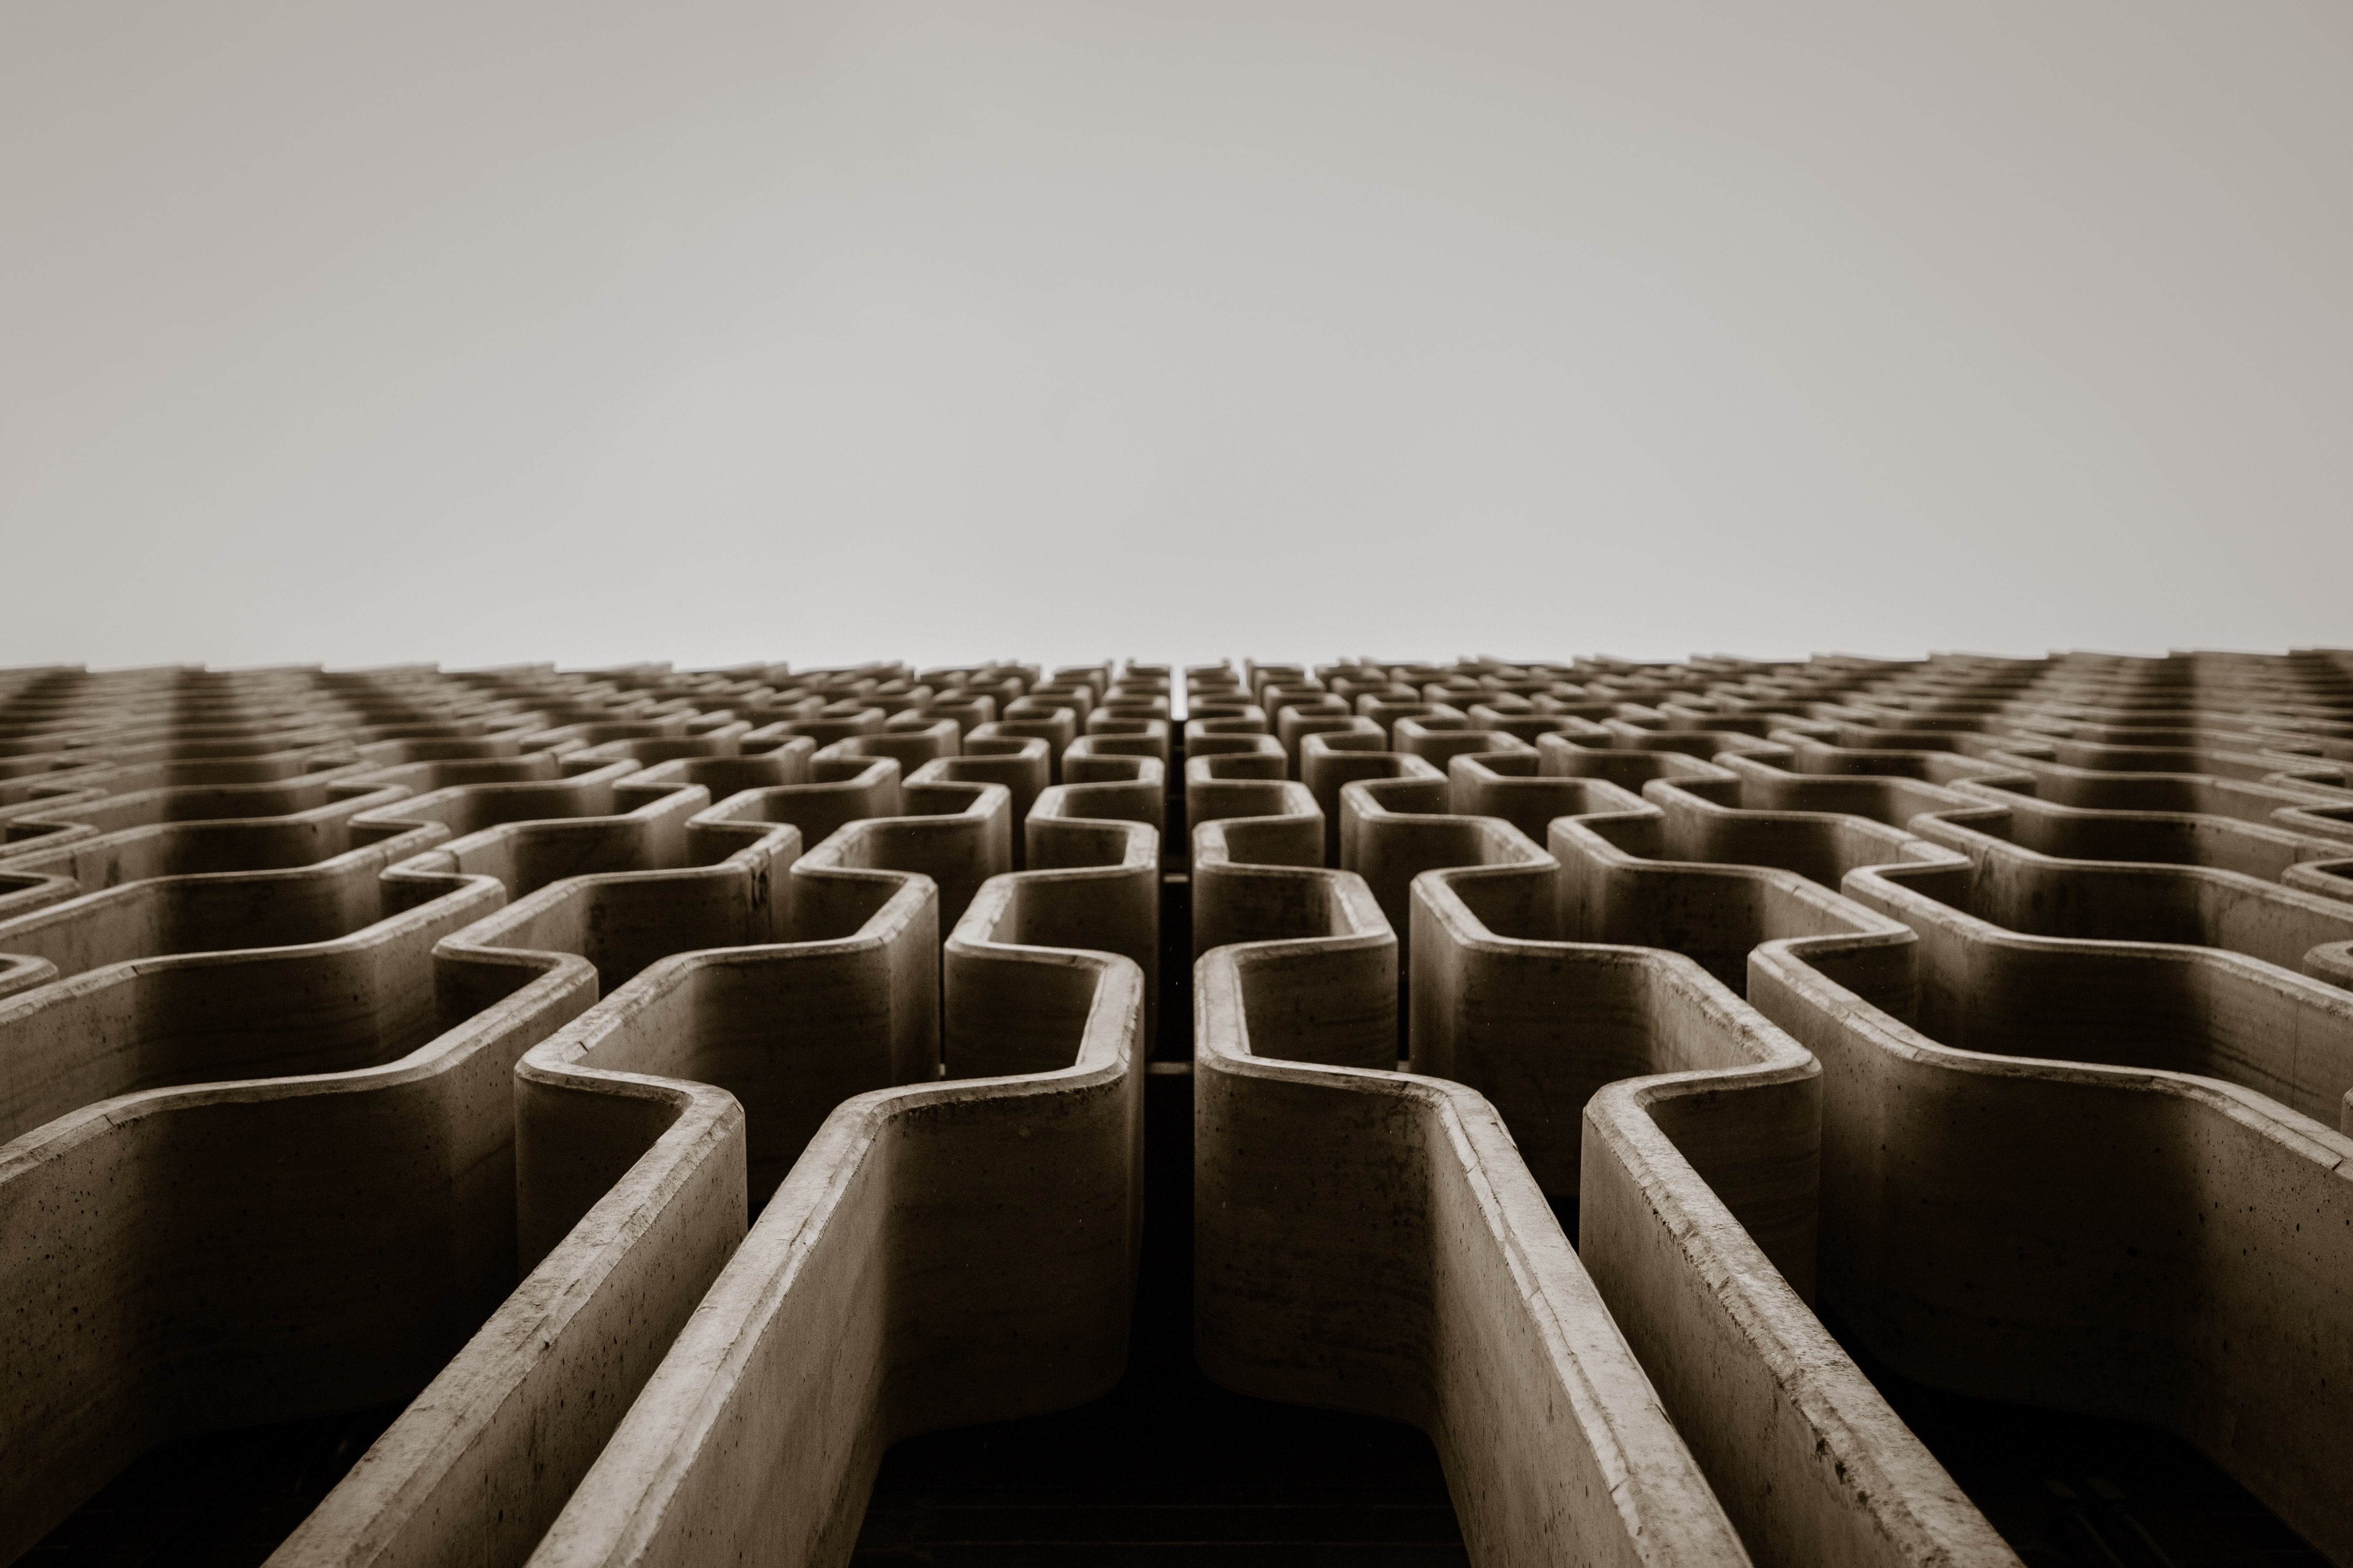 The author added a photo of a maze extending beyond the horizontal line.